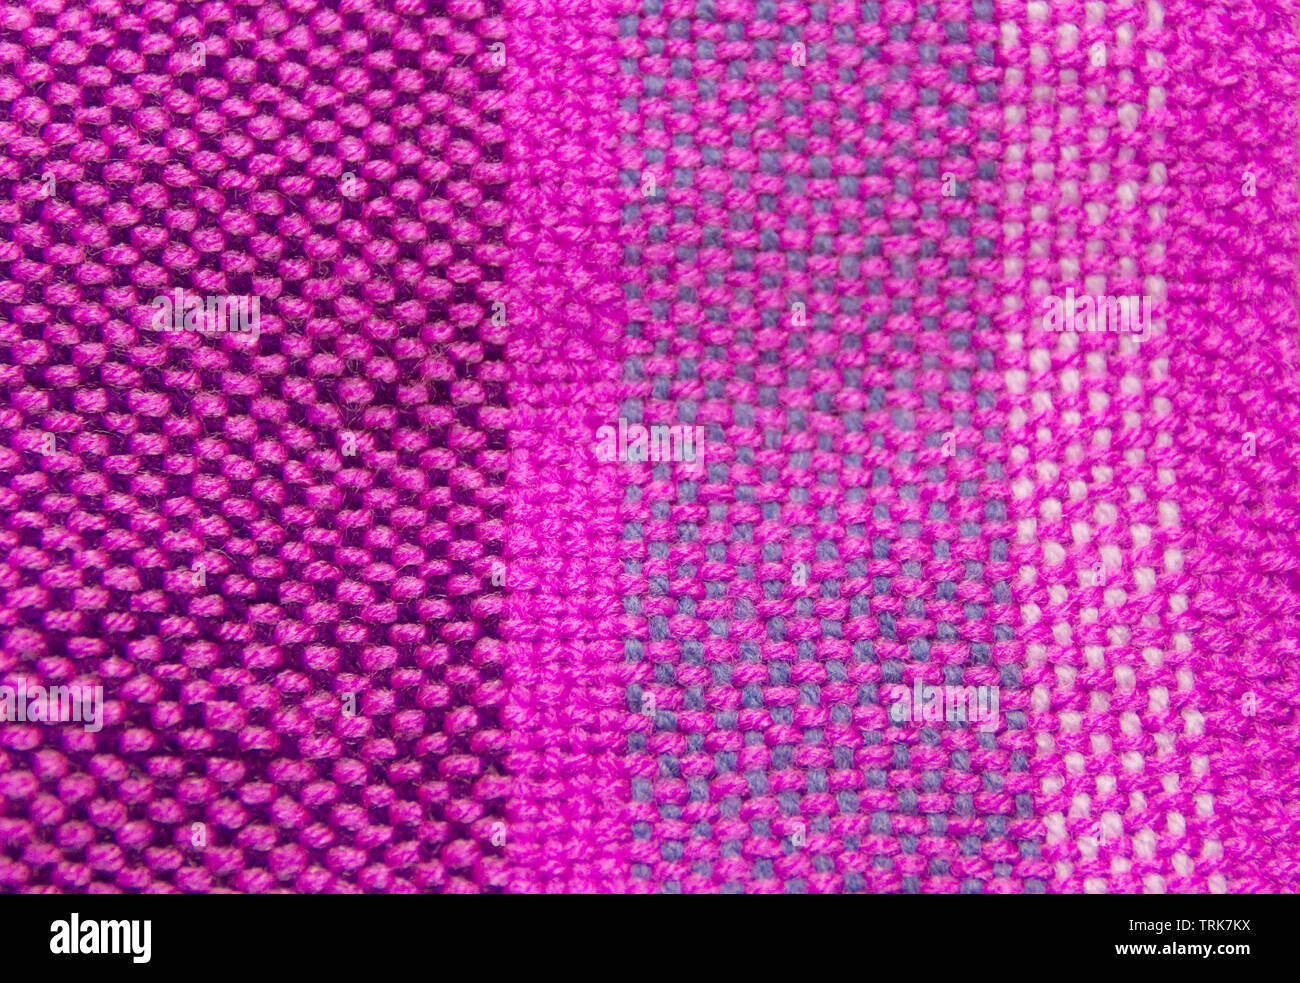 colorful background texture of weaving on loom - Stock Image